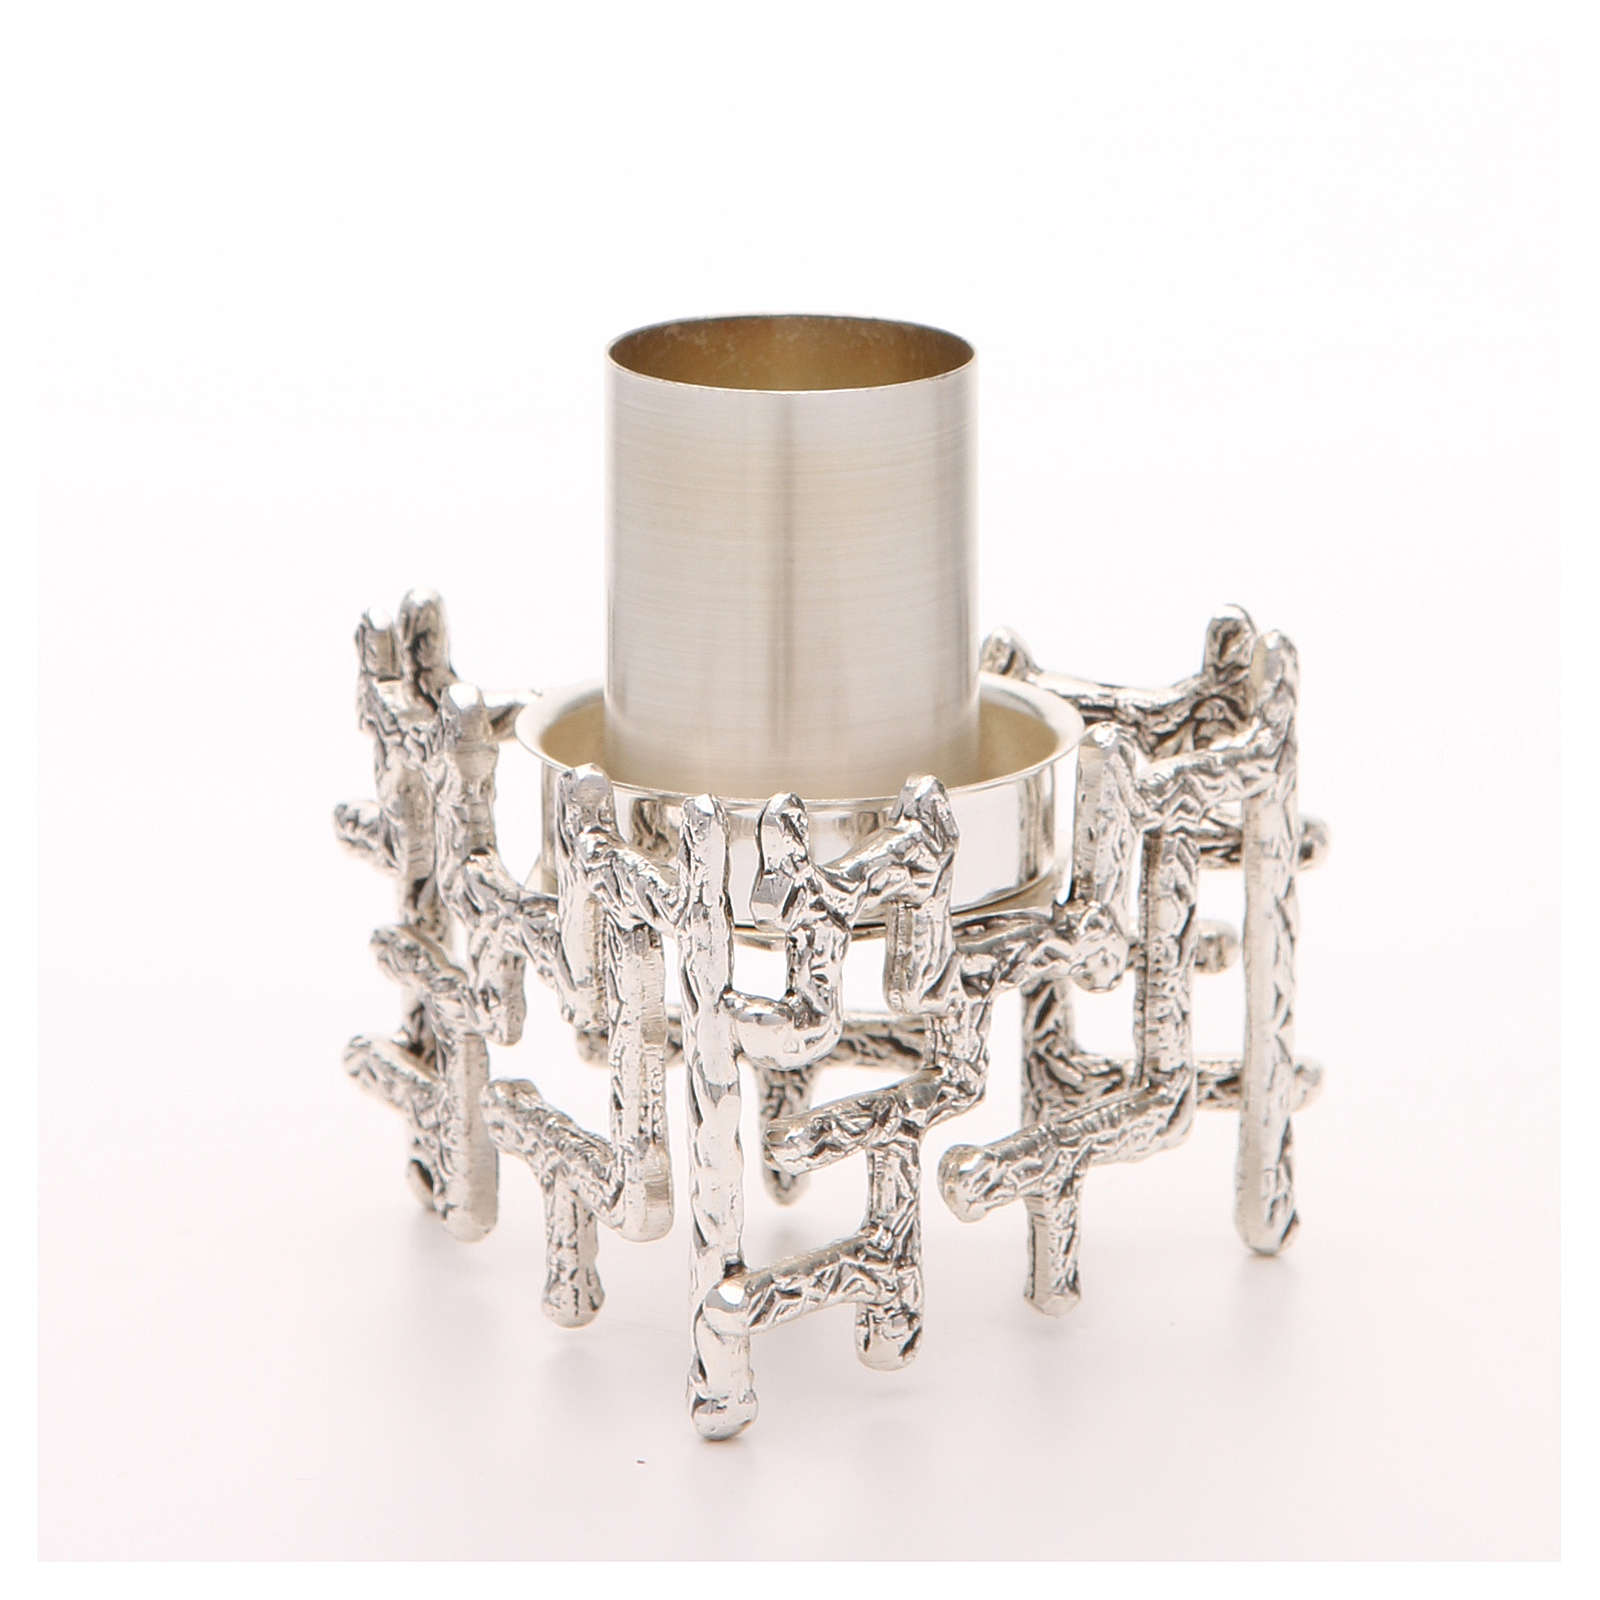 Altar candlestick in silvered bronze, decorated 4